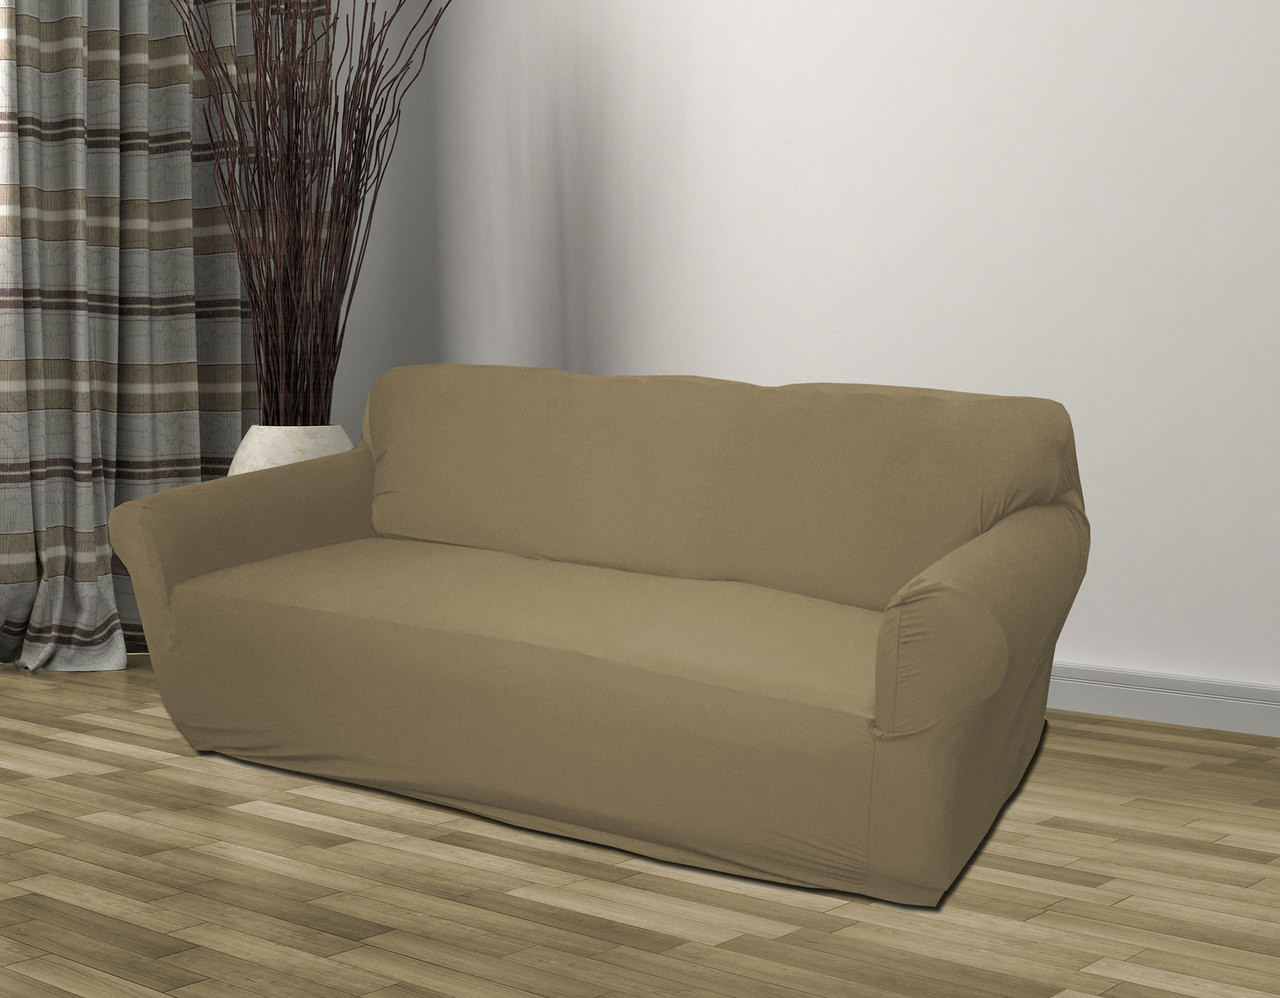 Kashi Home Stretch Jersey Slipcover Taupe - Sofa, Loveseat, Chair